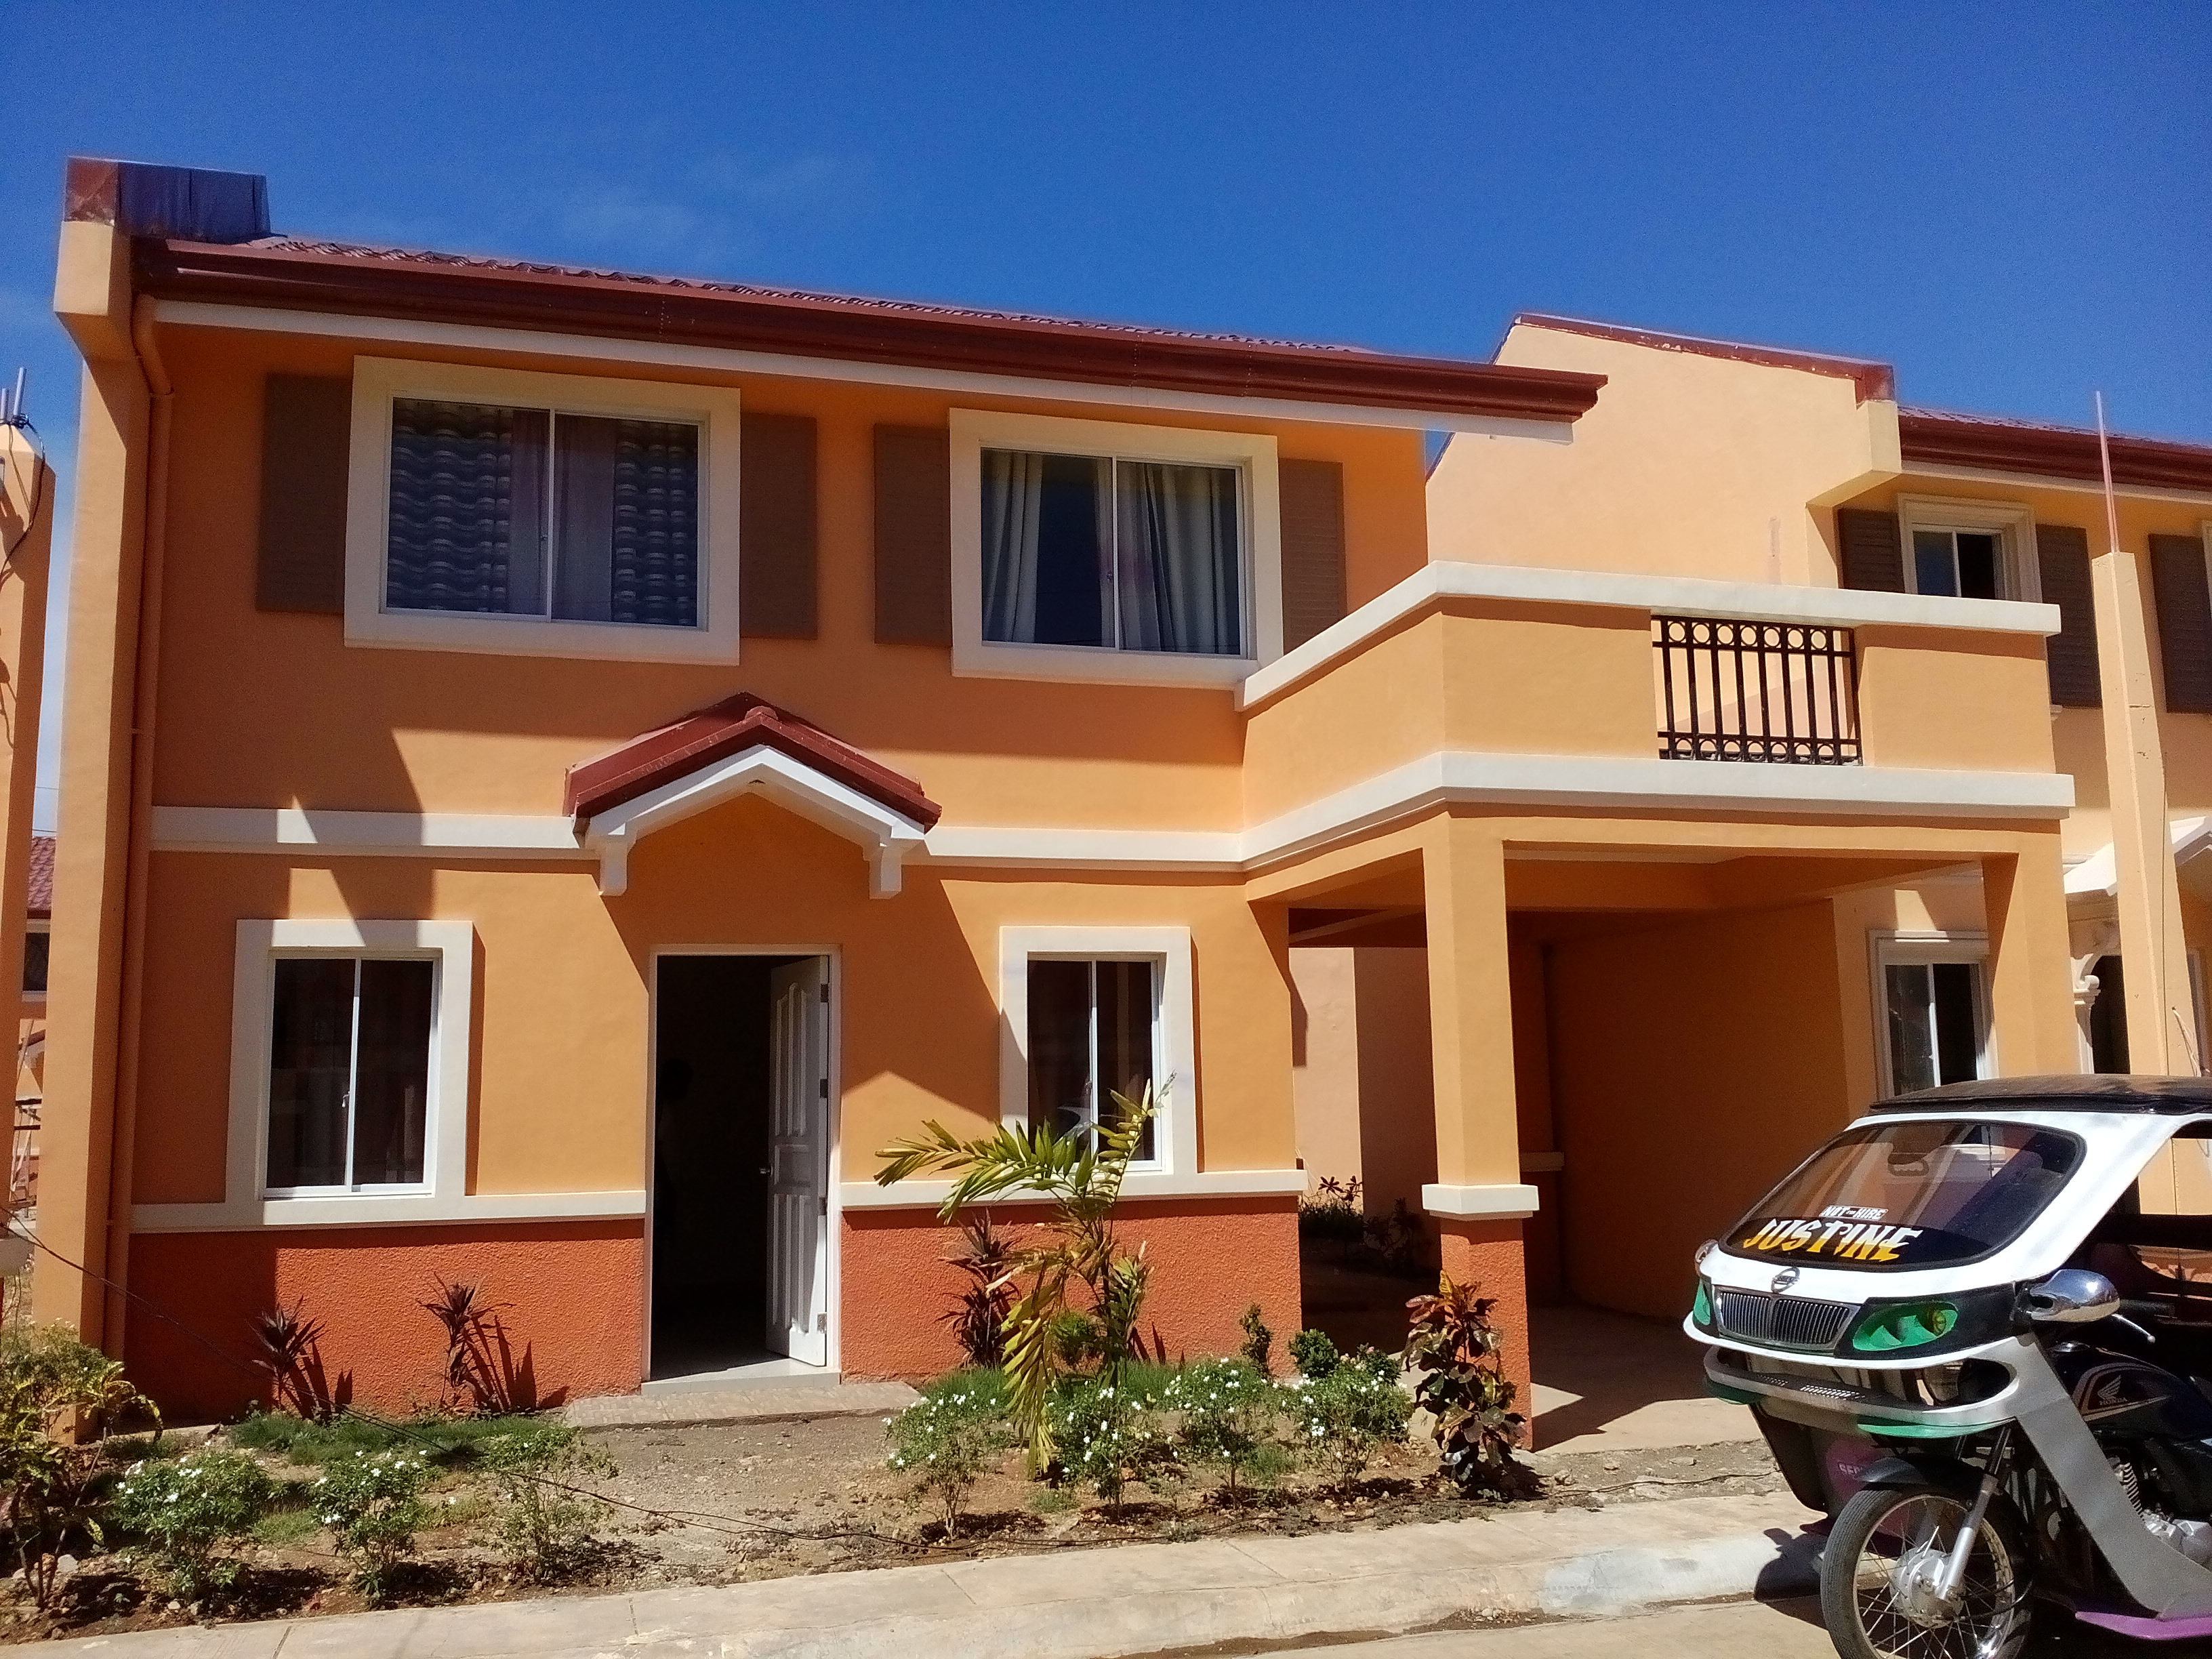 3 Bedroom House for Rent, Near Puerto Princesa City Airport